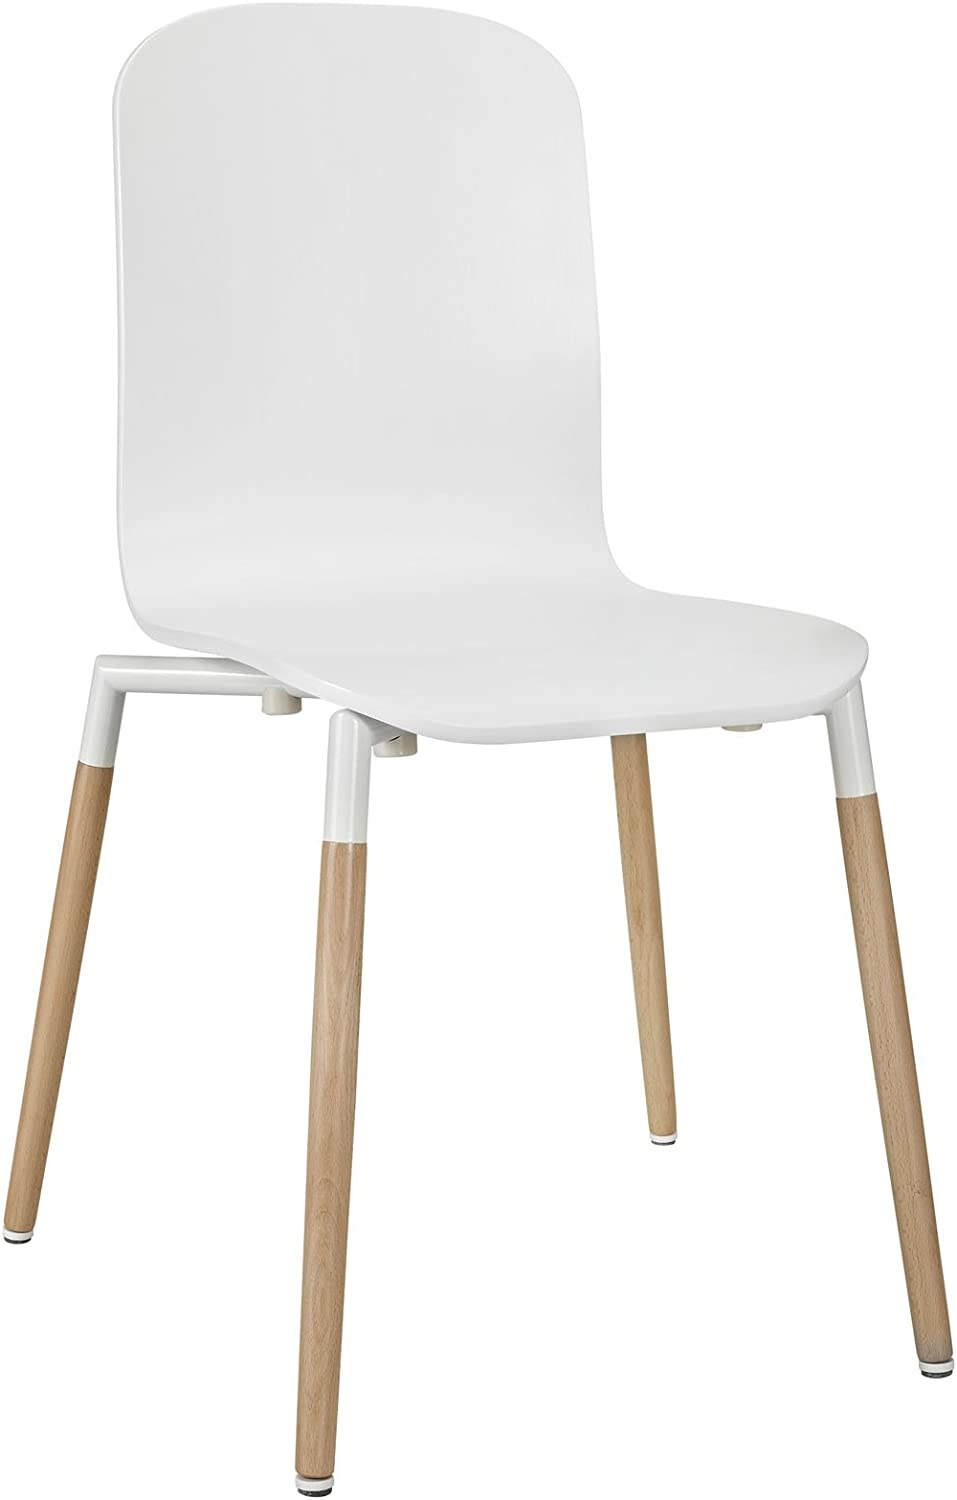 Modway Stack Wood Dining Chair, White